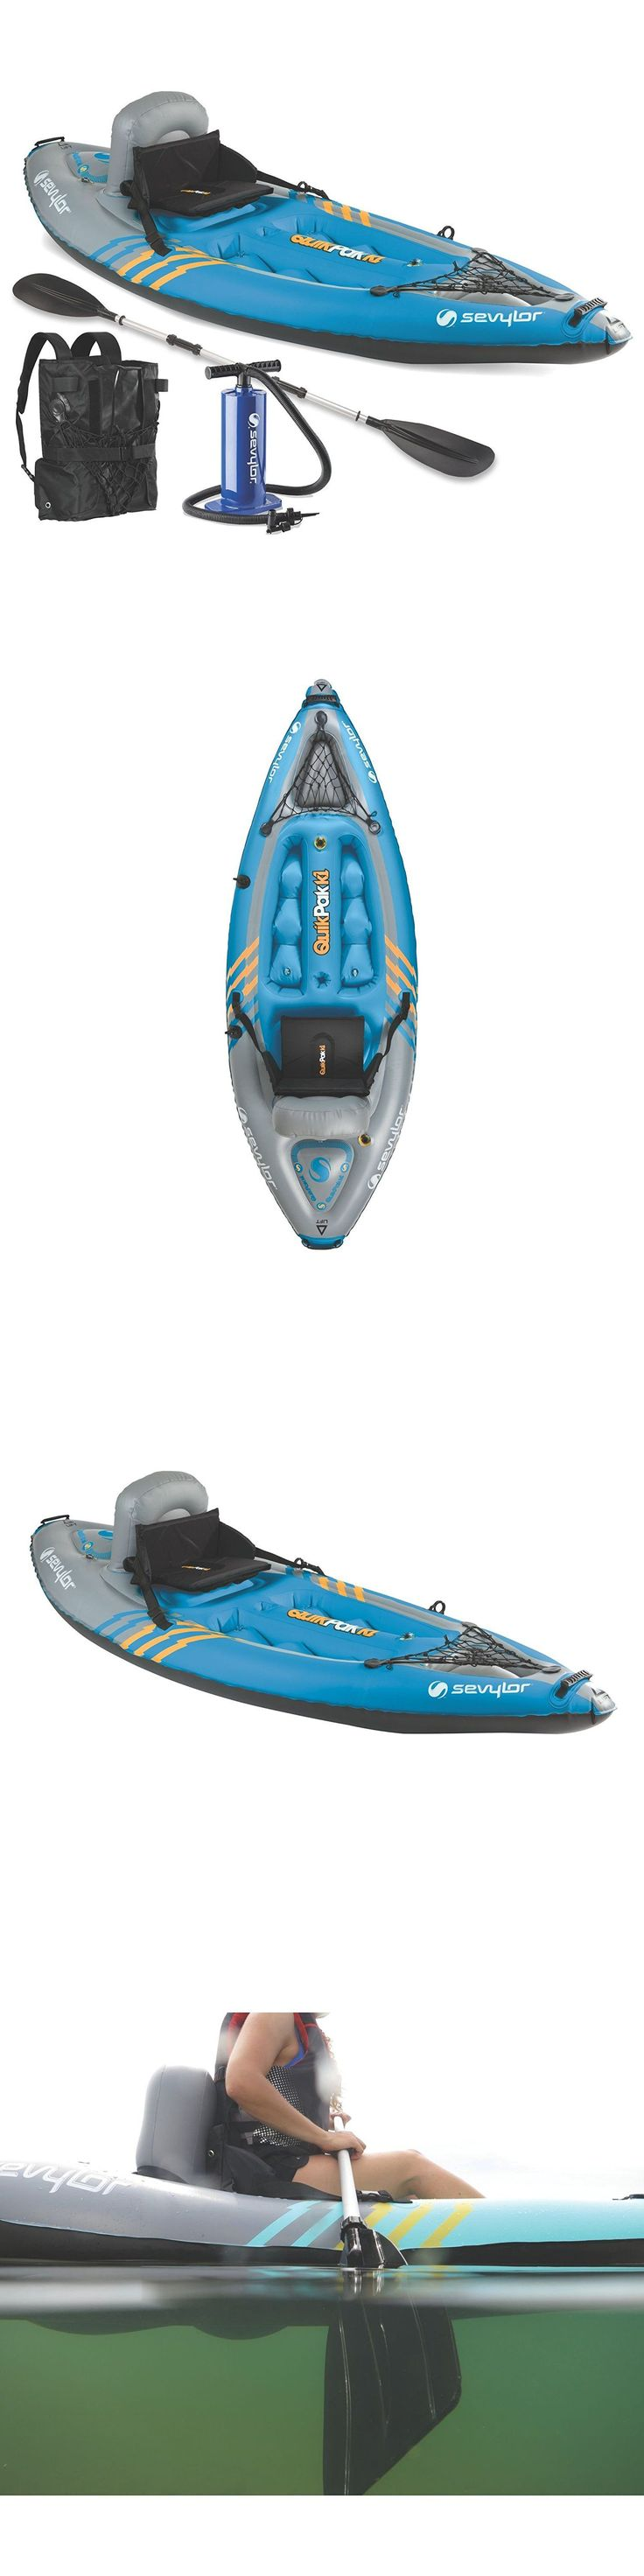 Kayaks 36122: New Sevylor K1 Quikpak 1-Person Inflatable Kayak Blue W Bag Seat Pump And Paddle -> BUY IT NOW ONLY: $139.95 on eBay!